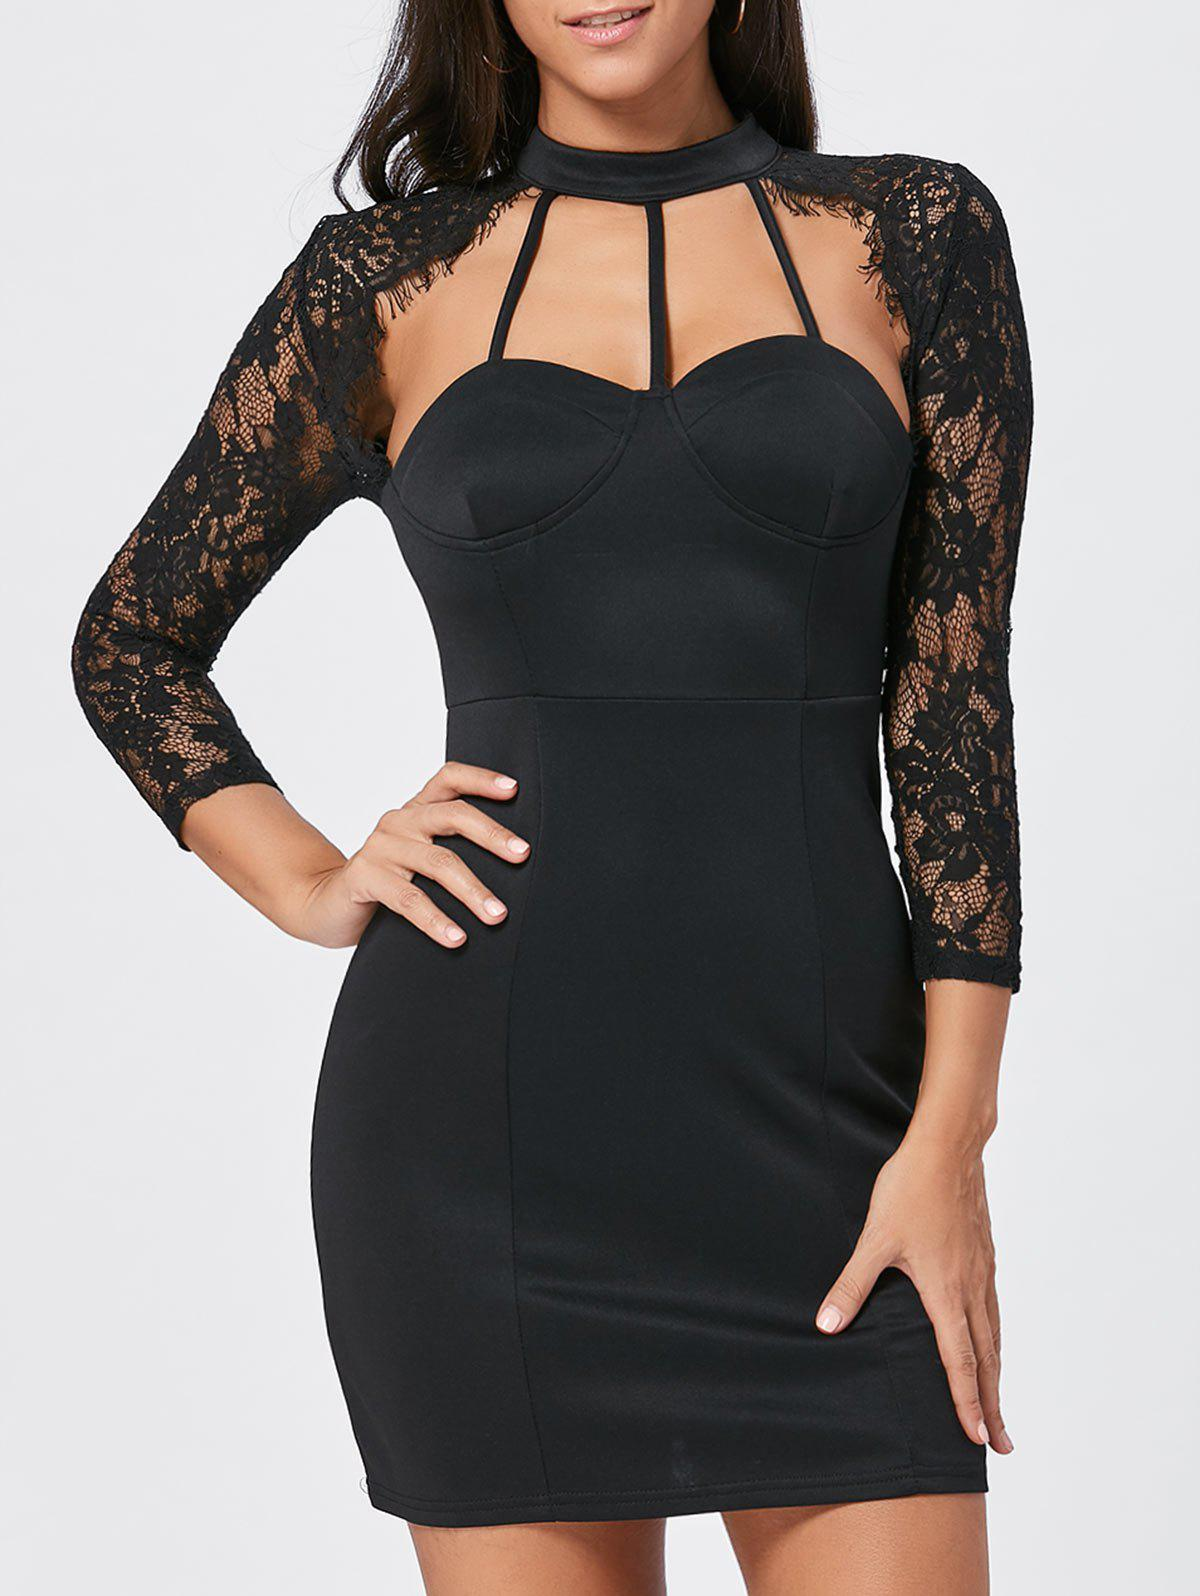 Lace Panel Cut Out Bodycon Dress футболка i want to believe